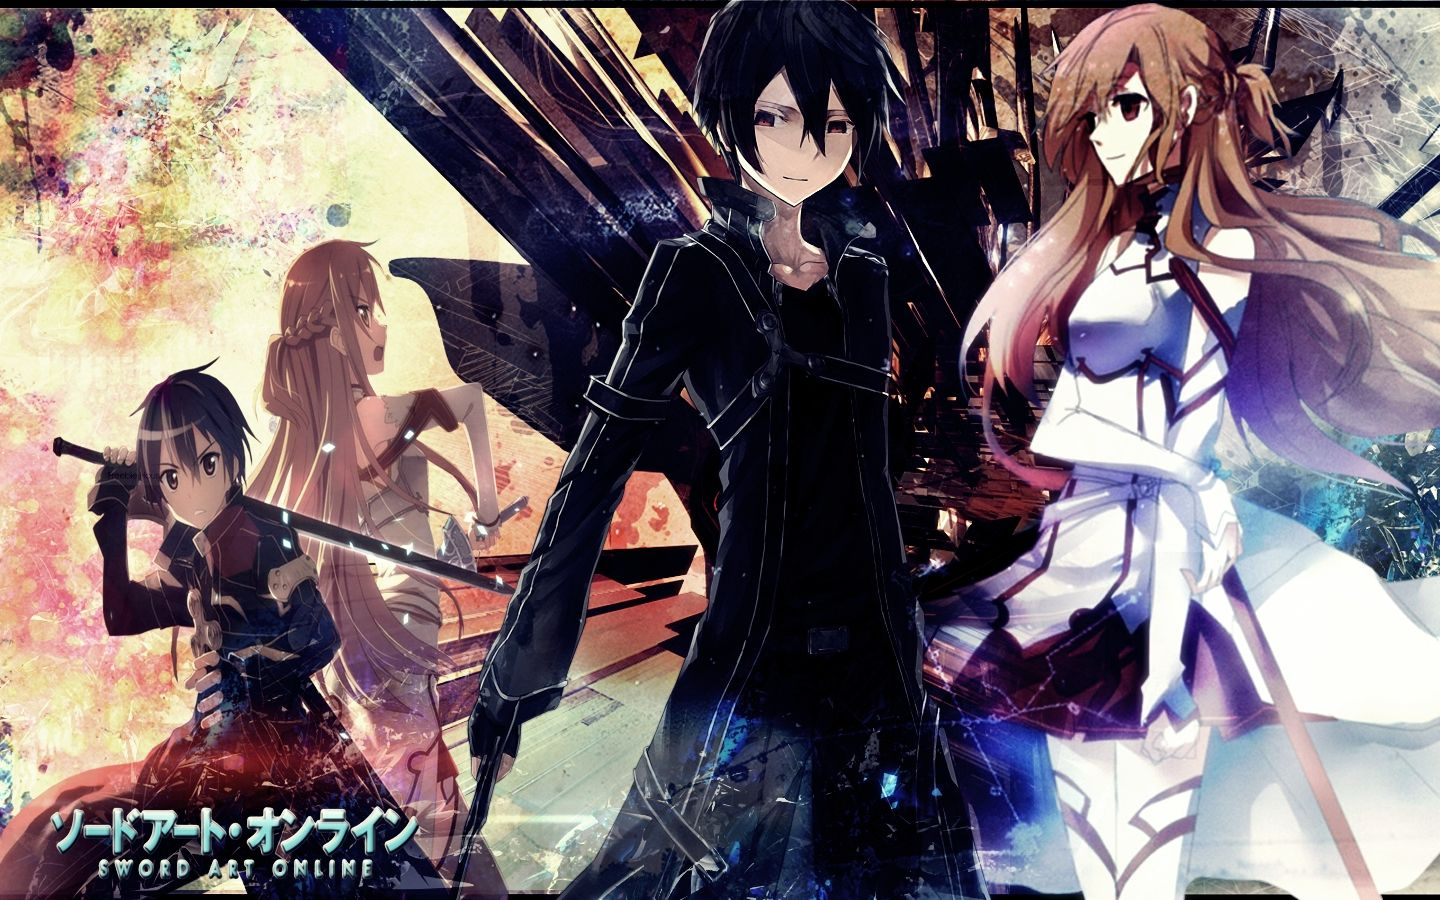 Sword Art Online Wallpaper By Lyuno On Deviantart Sword Art Online Wallpaper Sword Art Online Kirito Sword Art Online